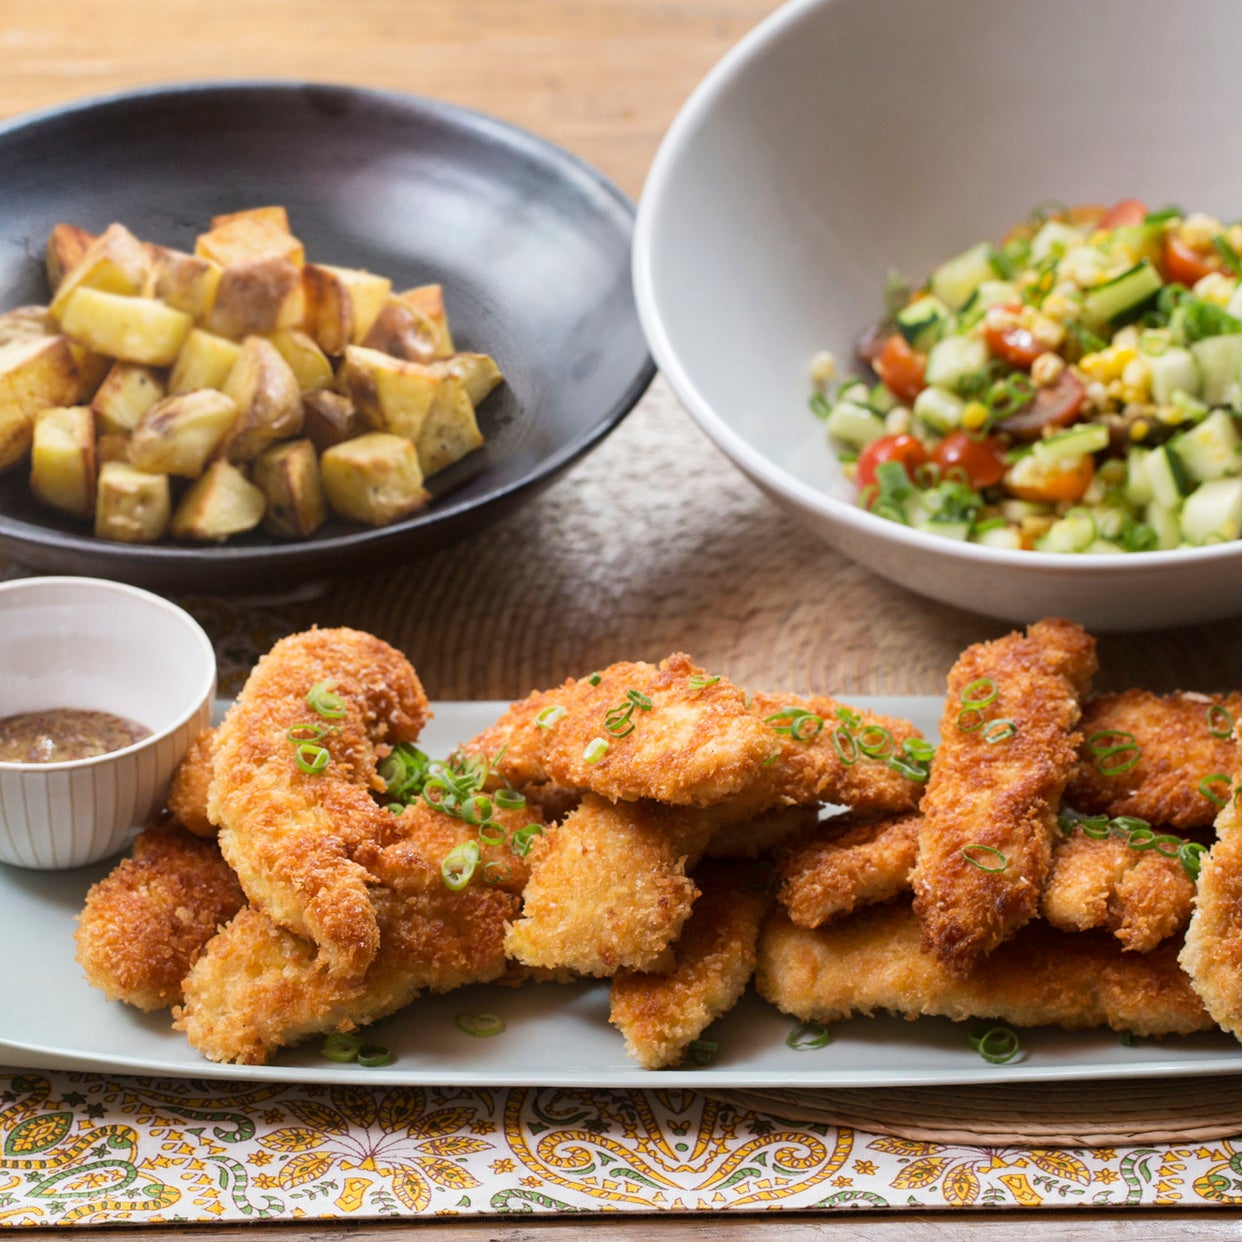 Crispy Chicken Tenders & Roasted Potatoes with Summer Vegetable Salad & Honey Mustard